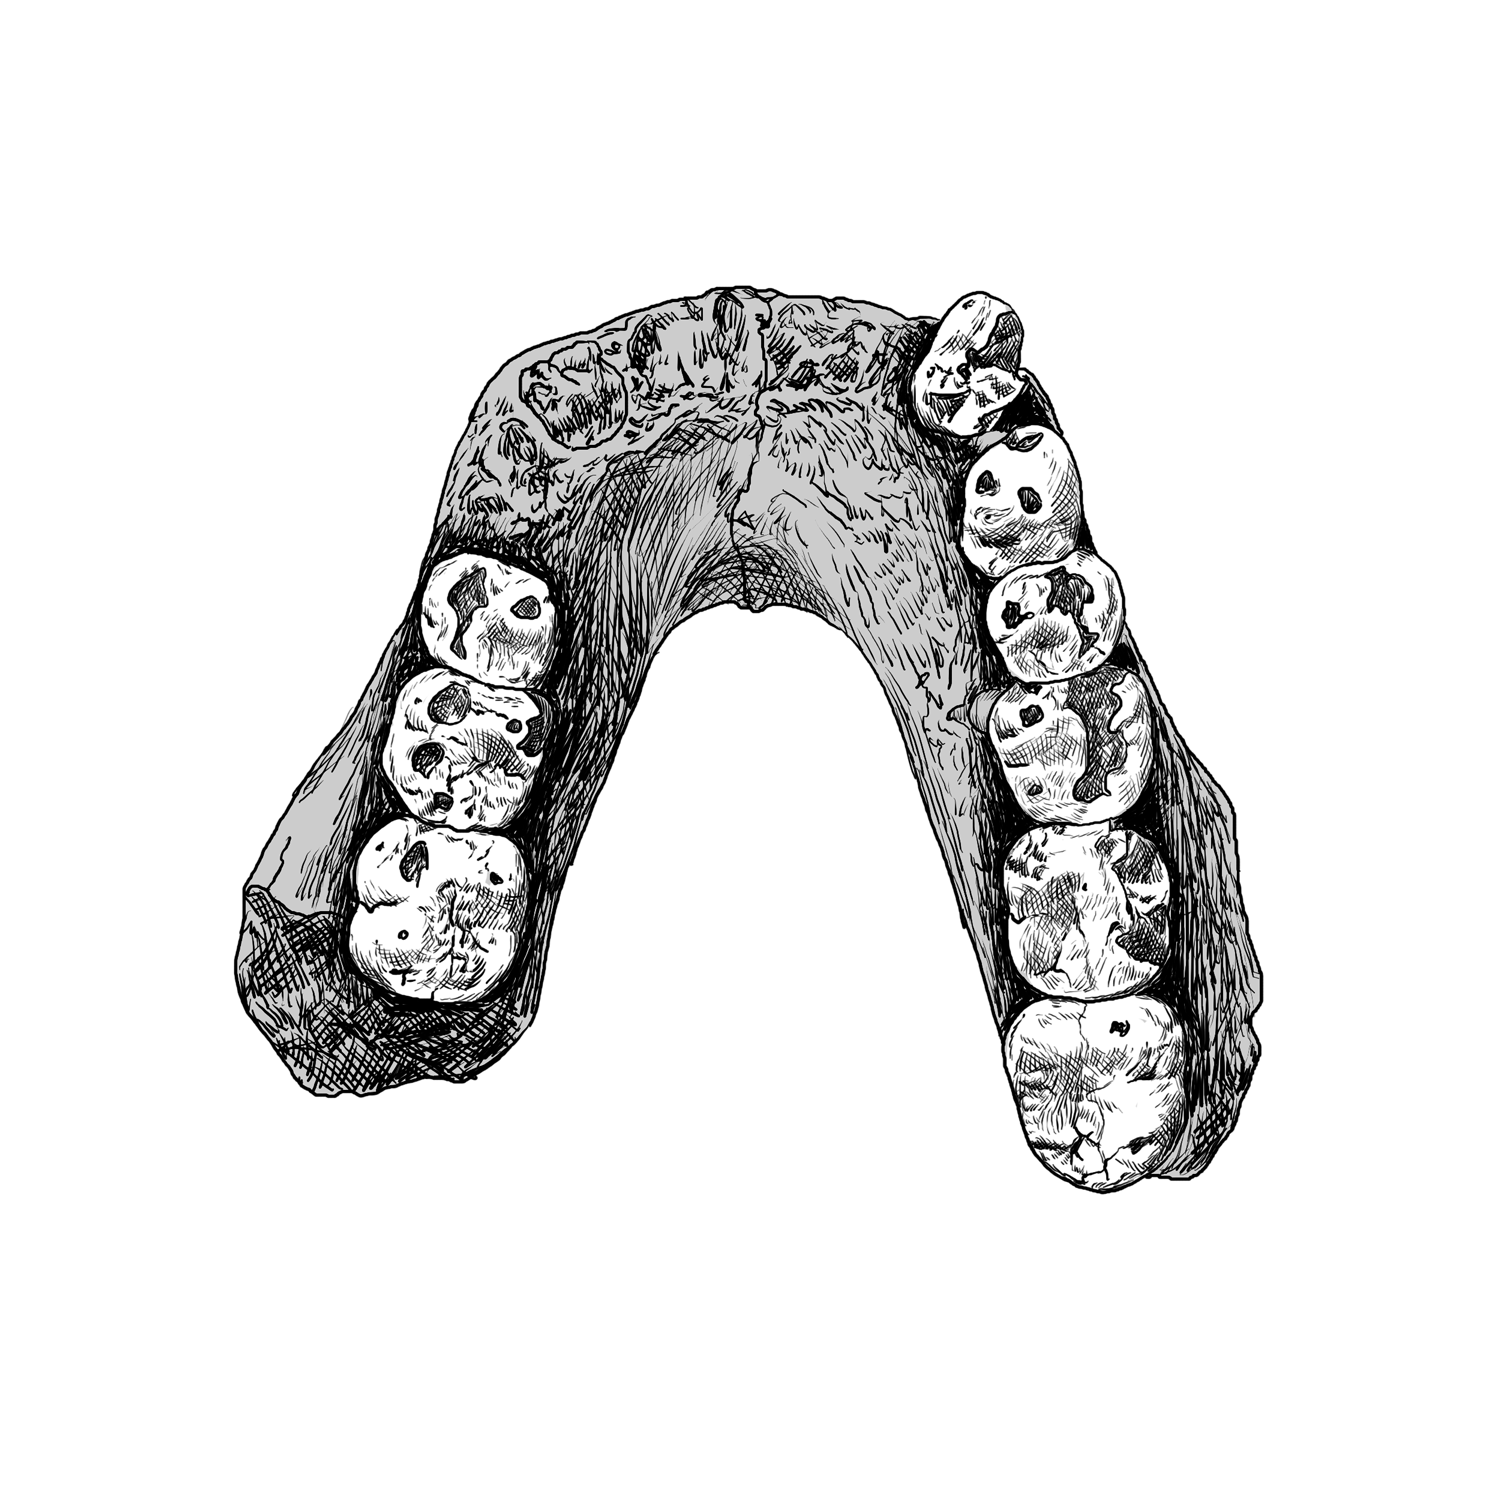 Drawing of Laetoli Hominid (LH) 4 mandible of Australopithecus afarensis